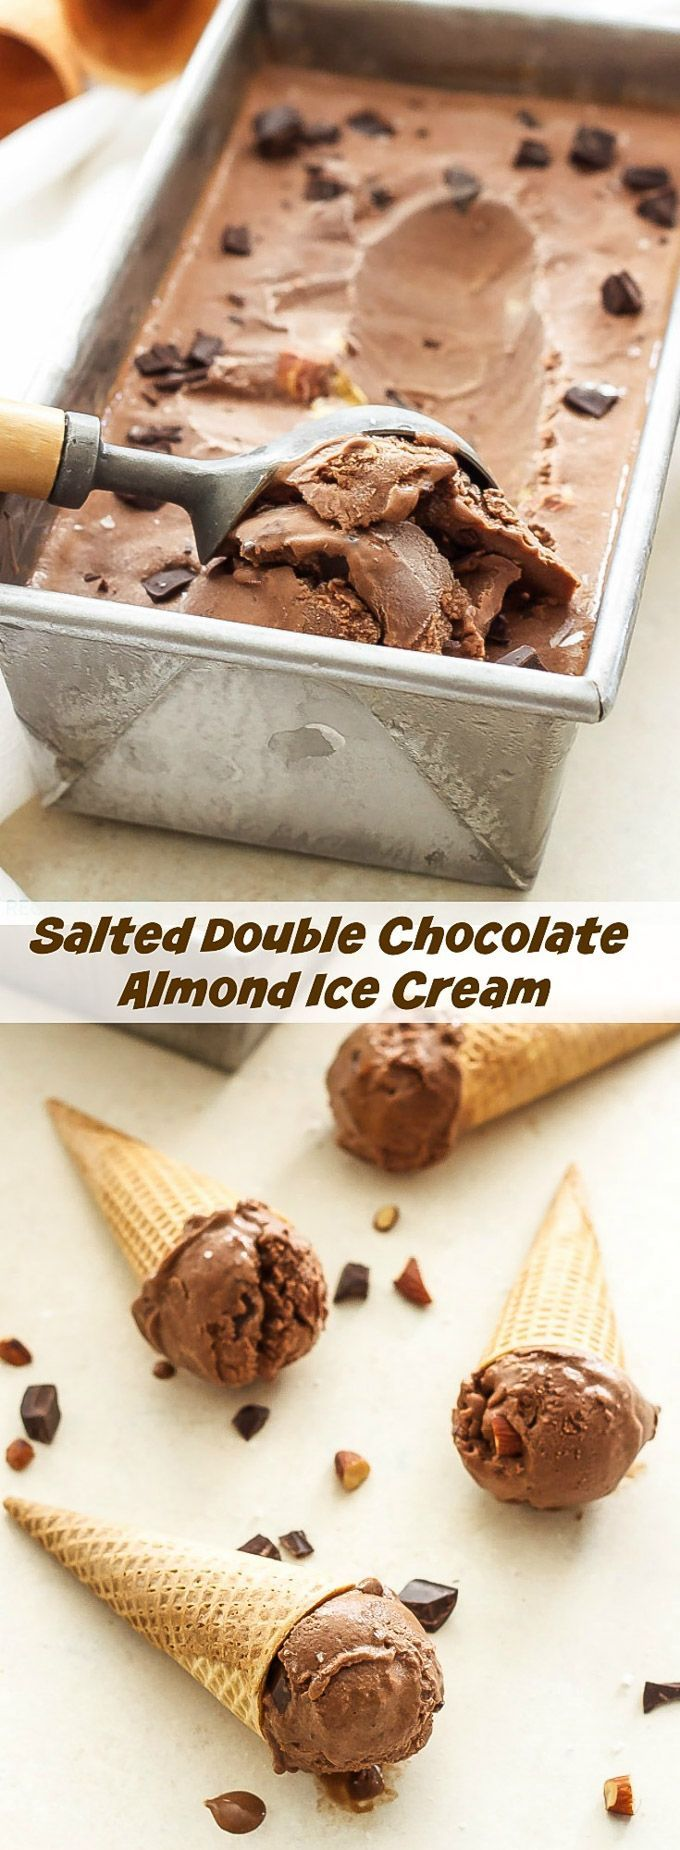 Salted Double Chocolate Almond Ice Cream | Loaded with almonds, chocolate chunks and a touch of sea salt, this dairy-free (vegan optional) ice cream is a salty-sweet chocolate lover's dream come true!